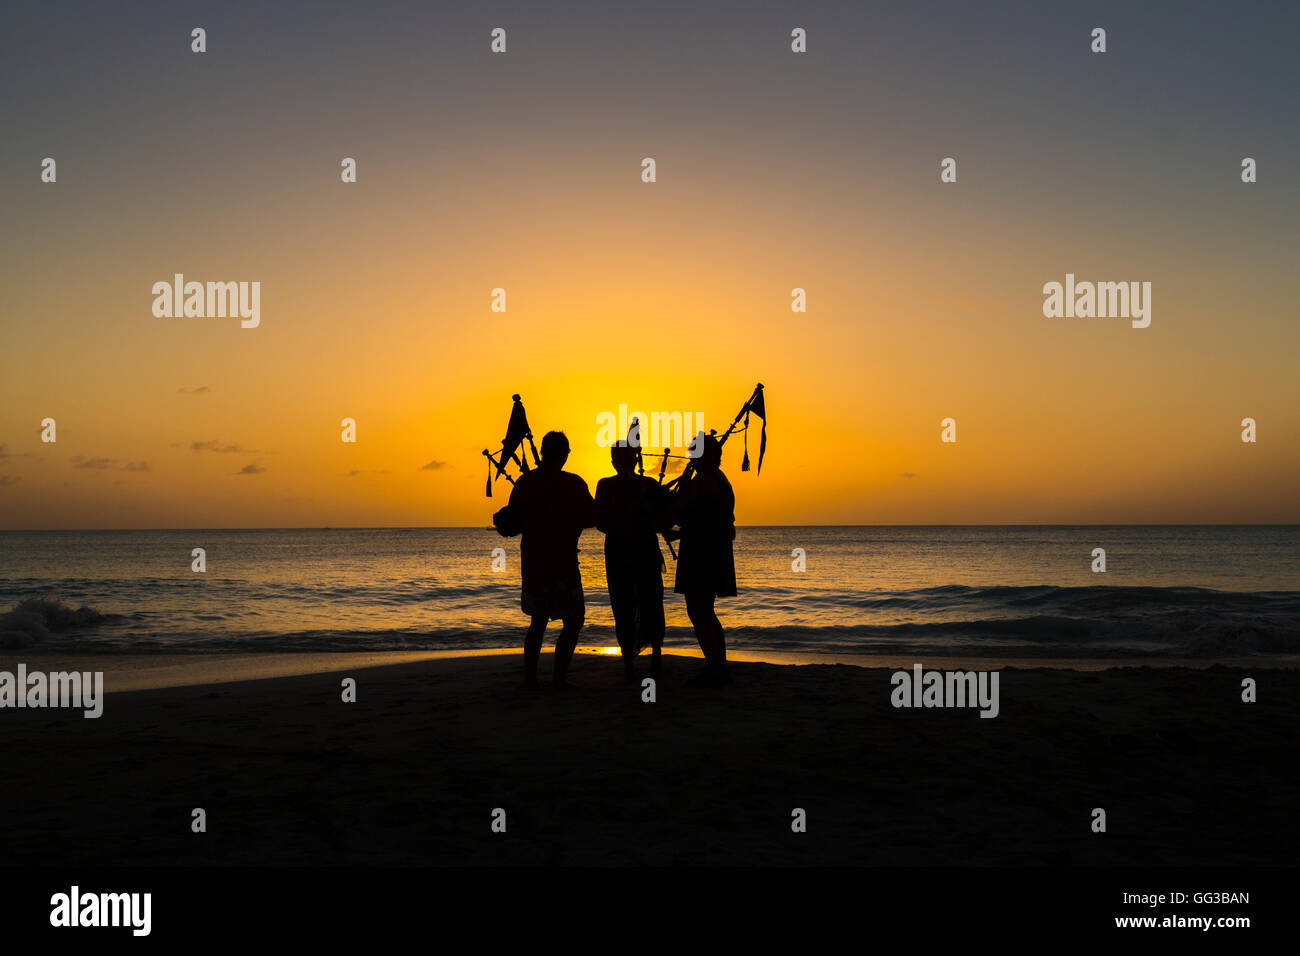 Bagpipers playing bagpipes on the beach at Jolly Harbour at sunset, south-west Antigua - Stock Image